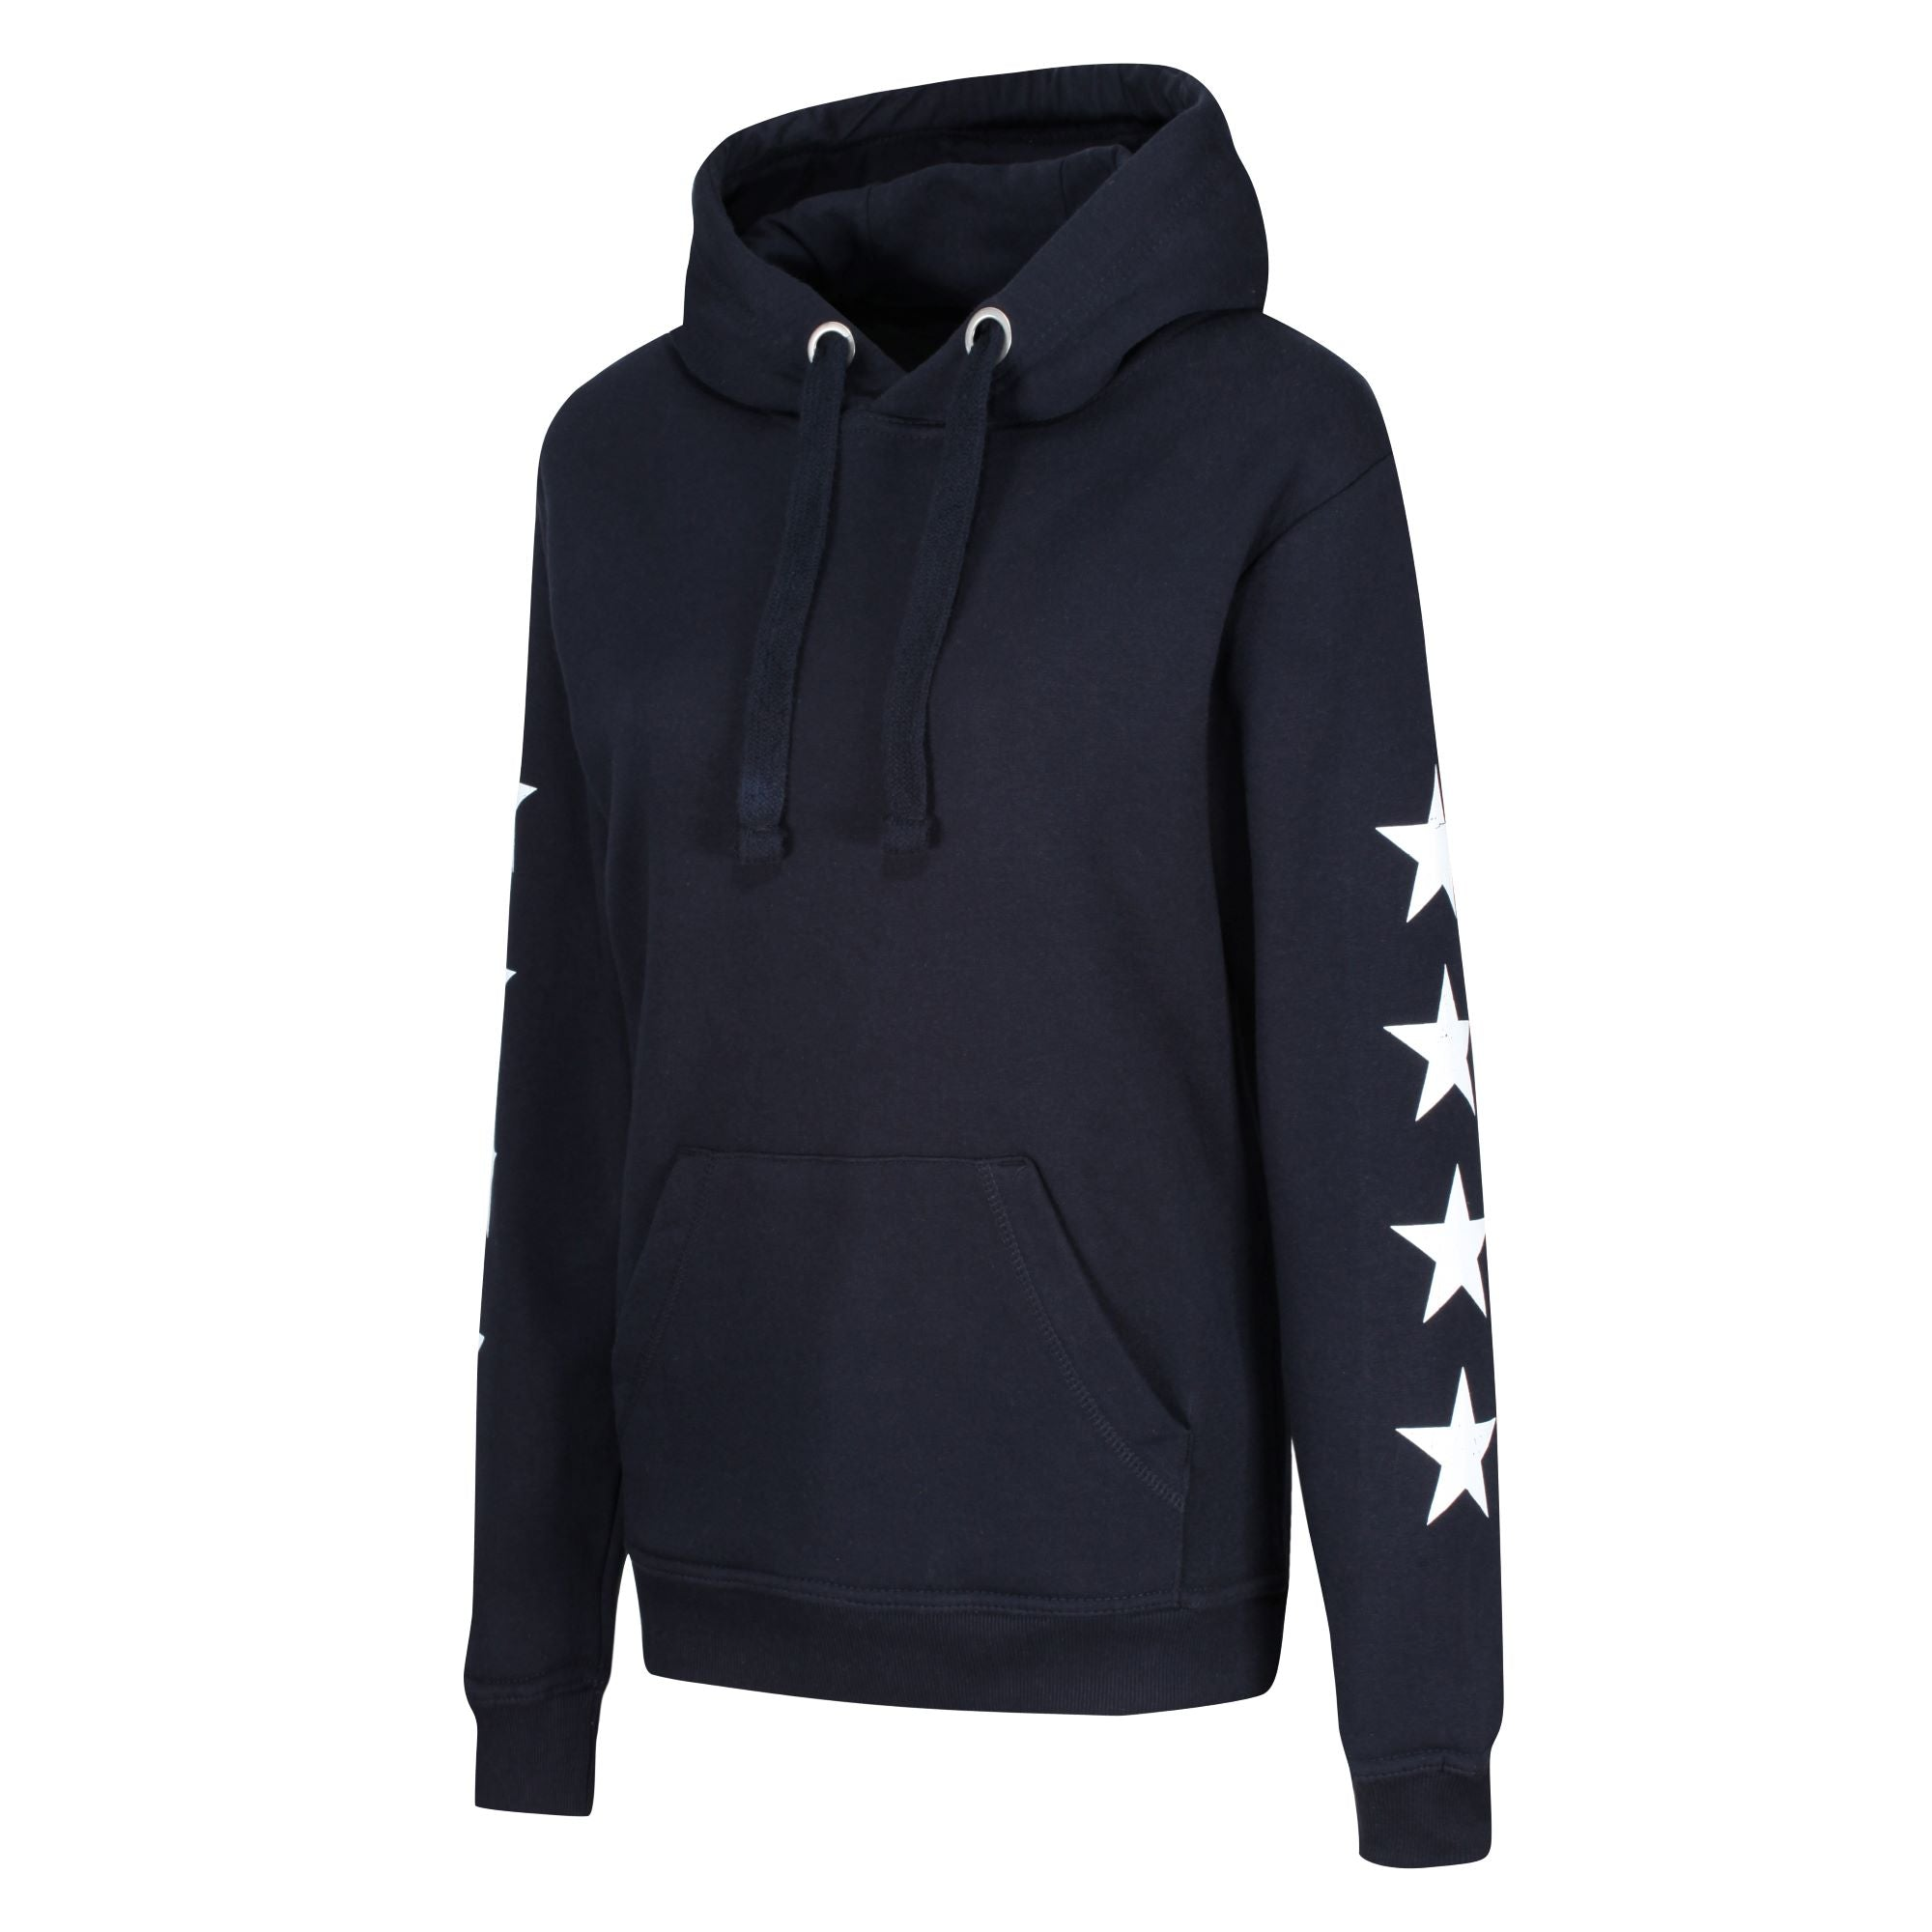 The STARS Heavyweight Hoodie - Navy